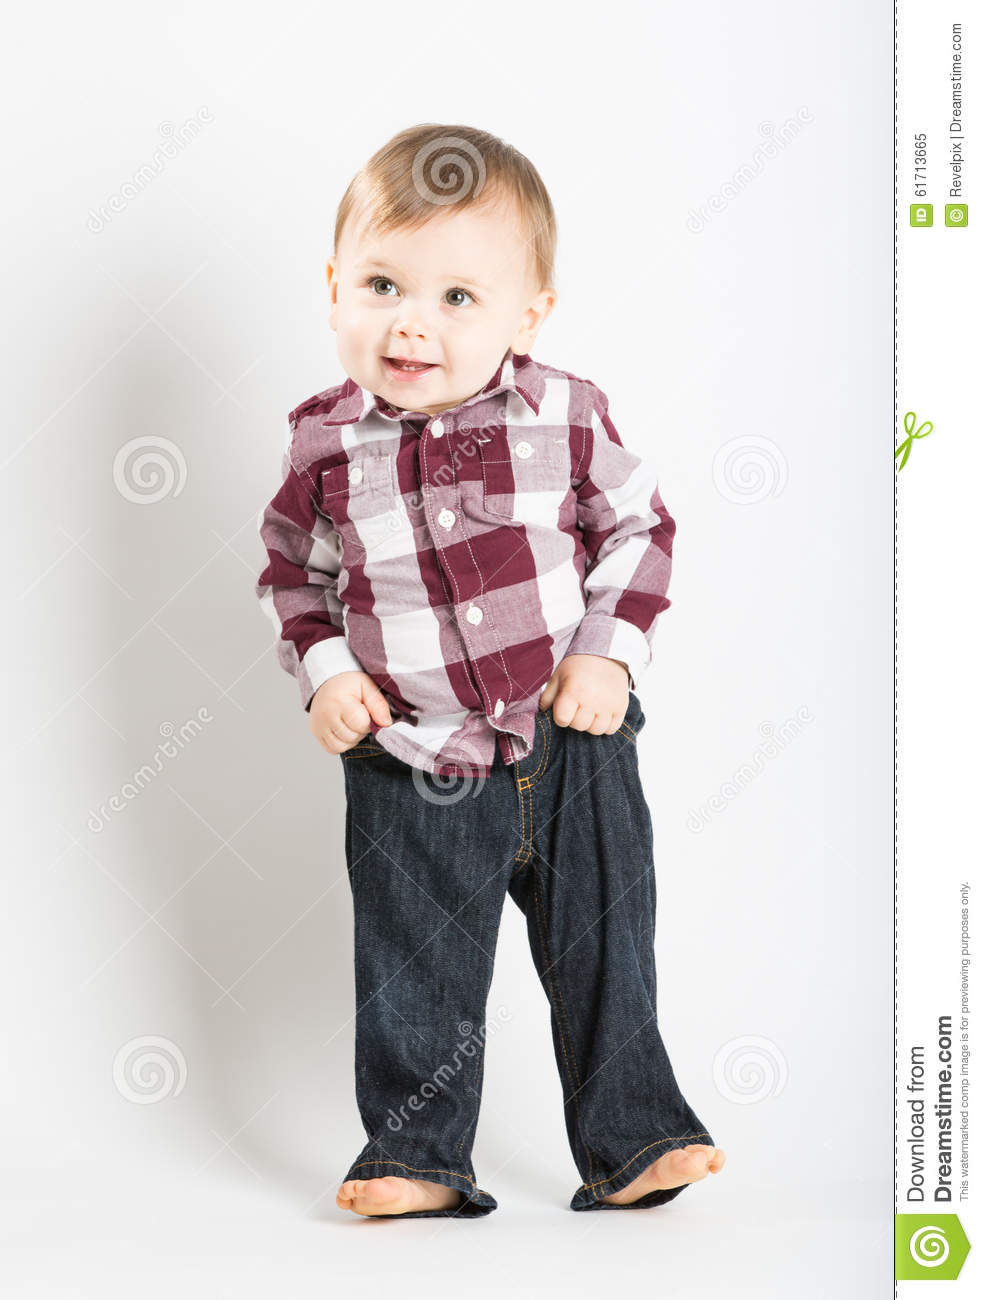 Baby Stands In Flannel And Jeans Pulling Up Pants Stock Photo.